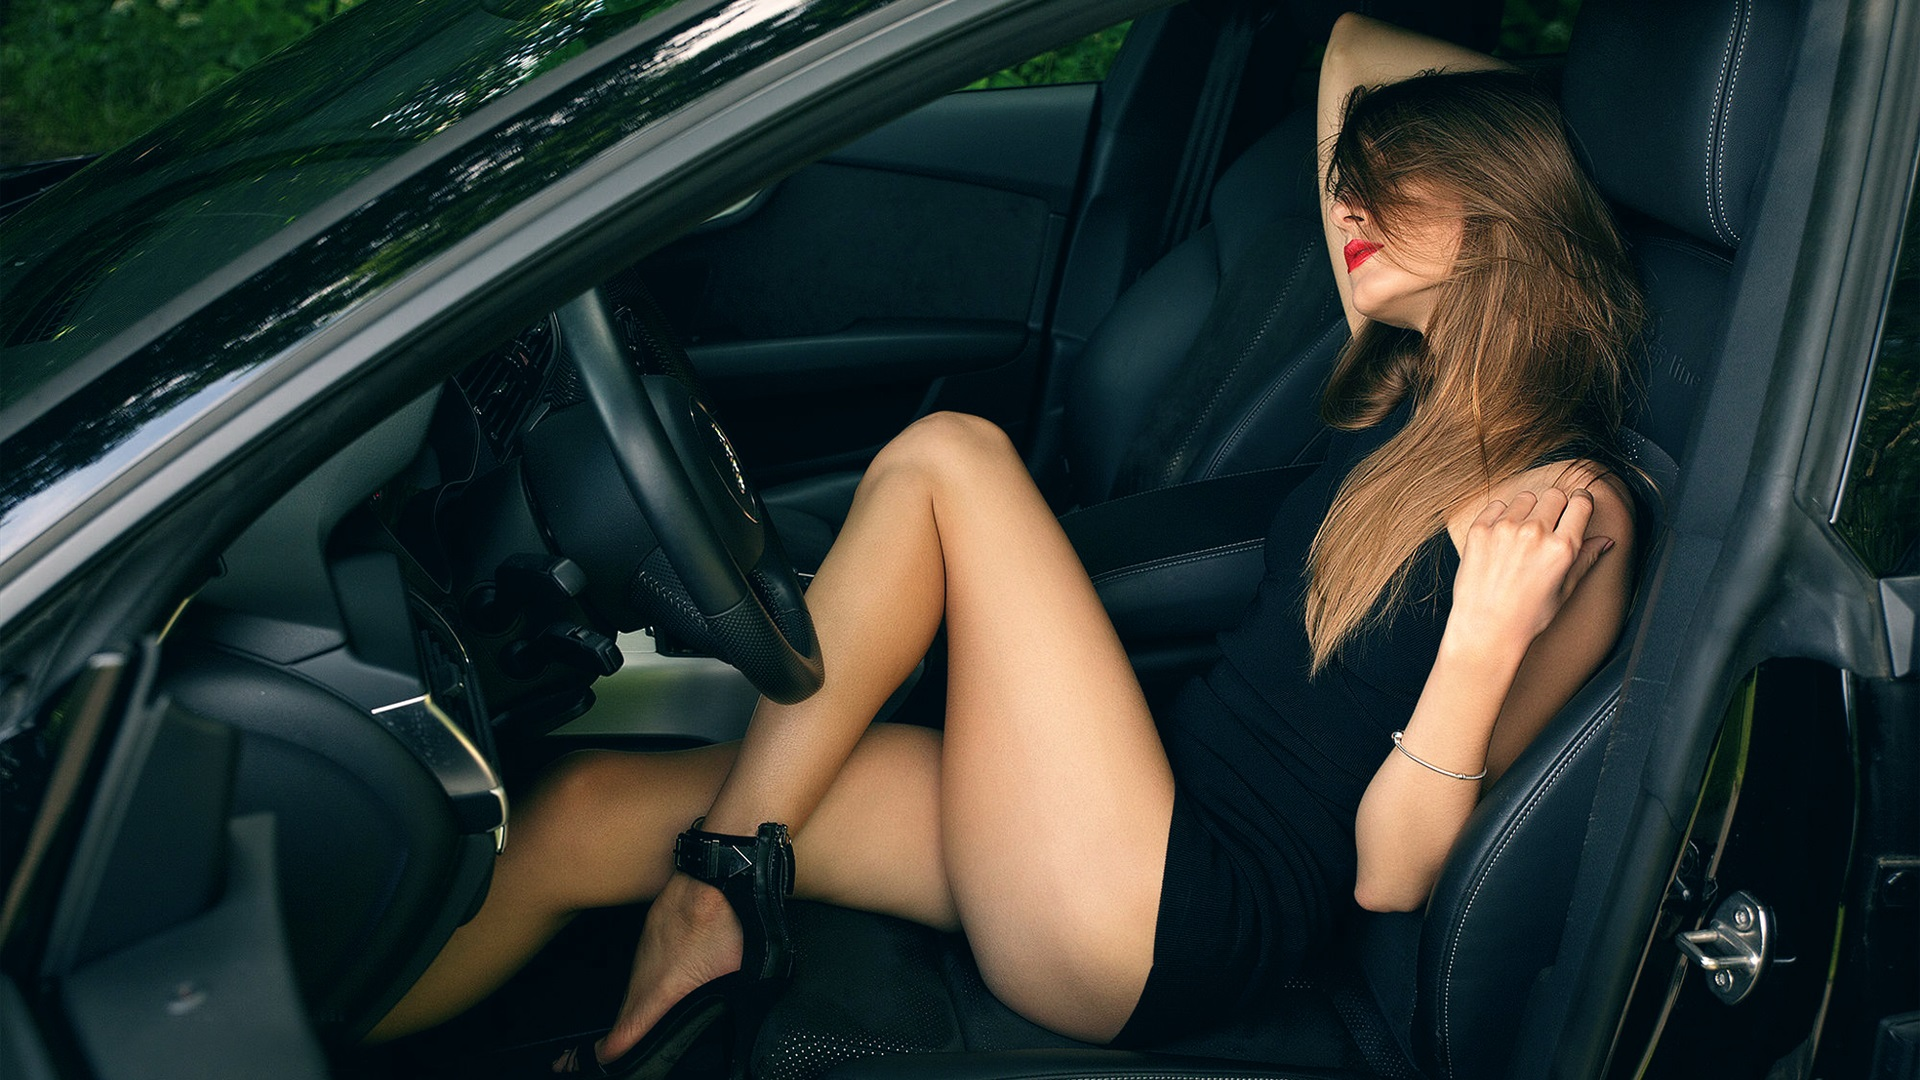 Wallpaper Sexy Girl In Car Beautiful Legs 1920x1200 Hd Picture Image